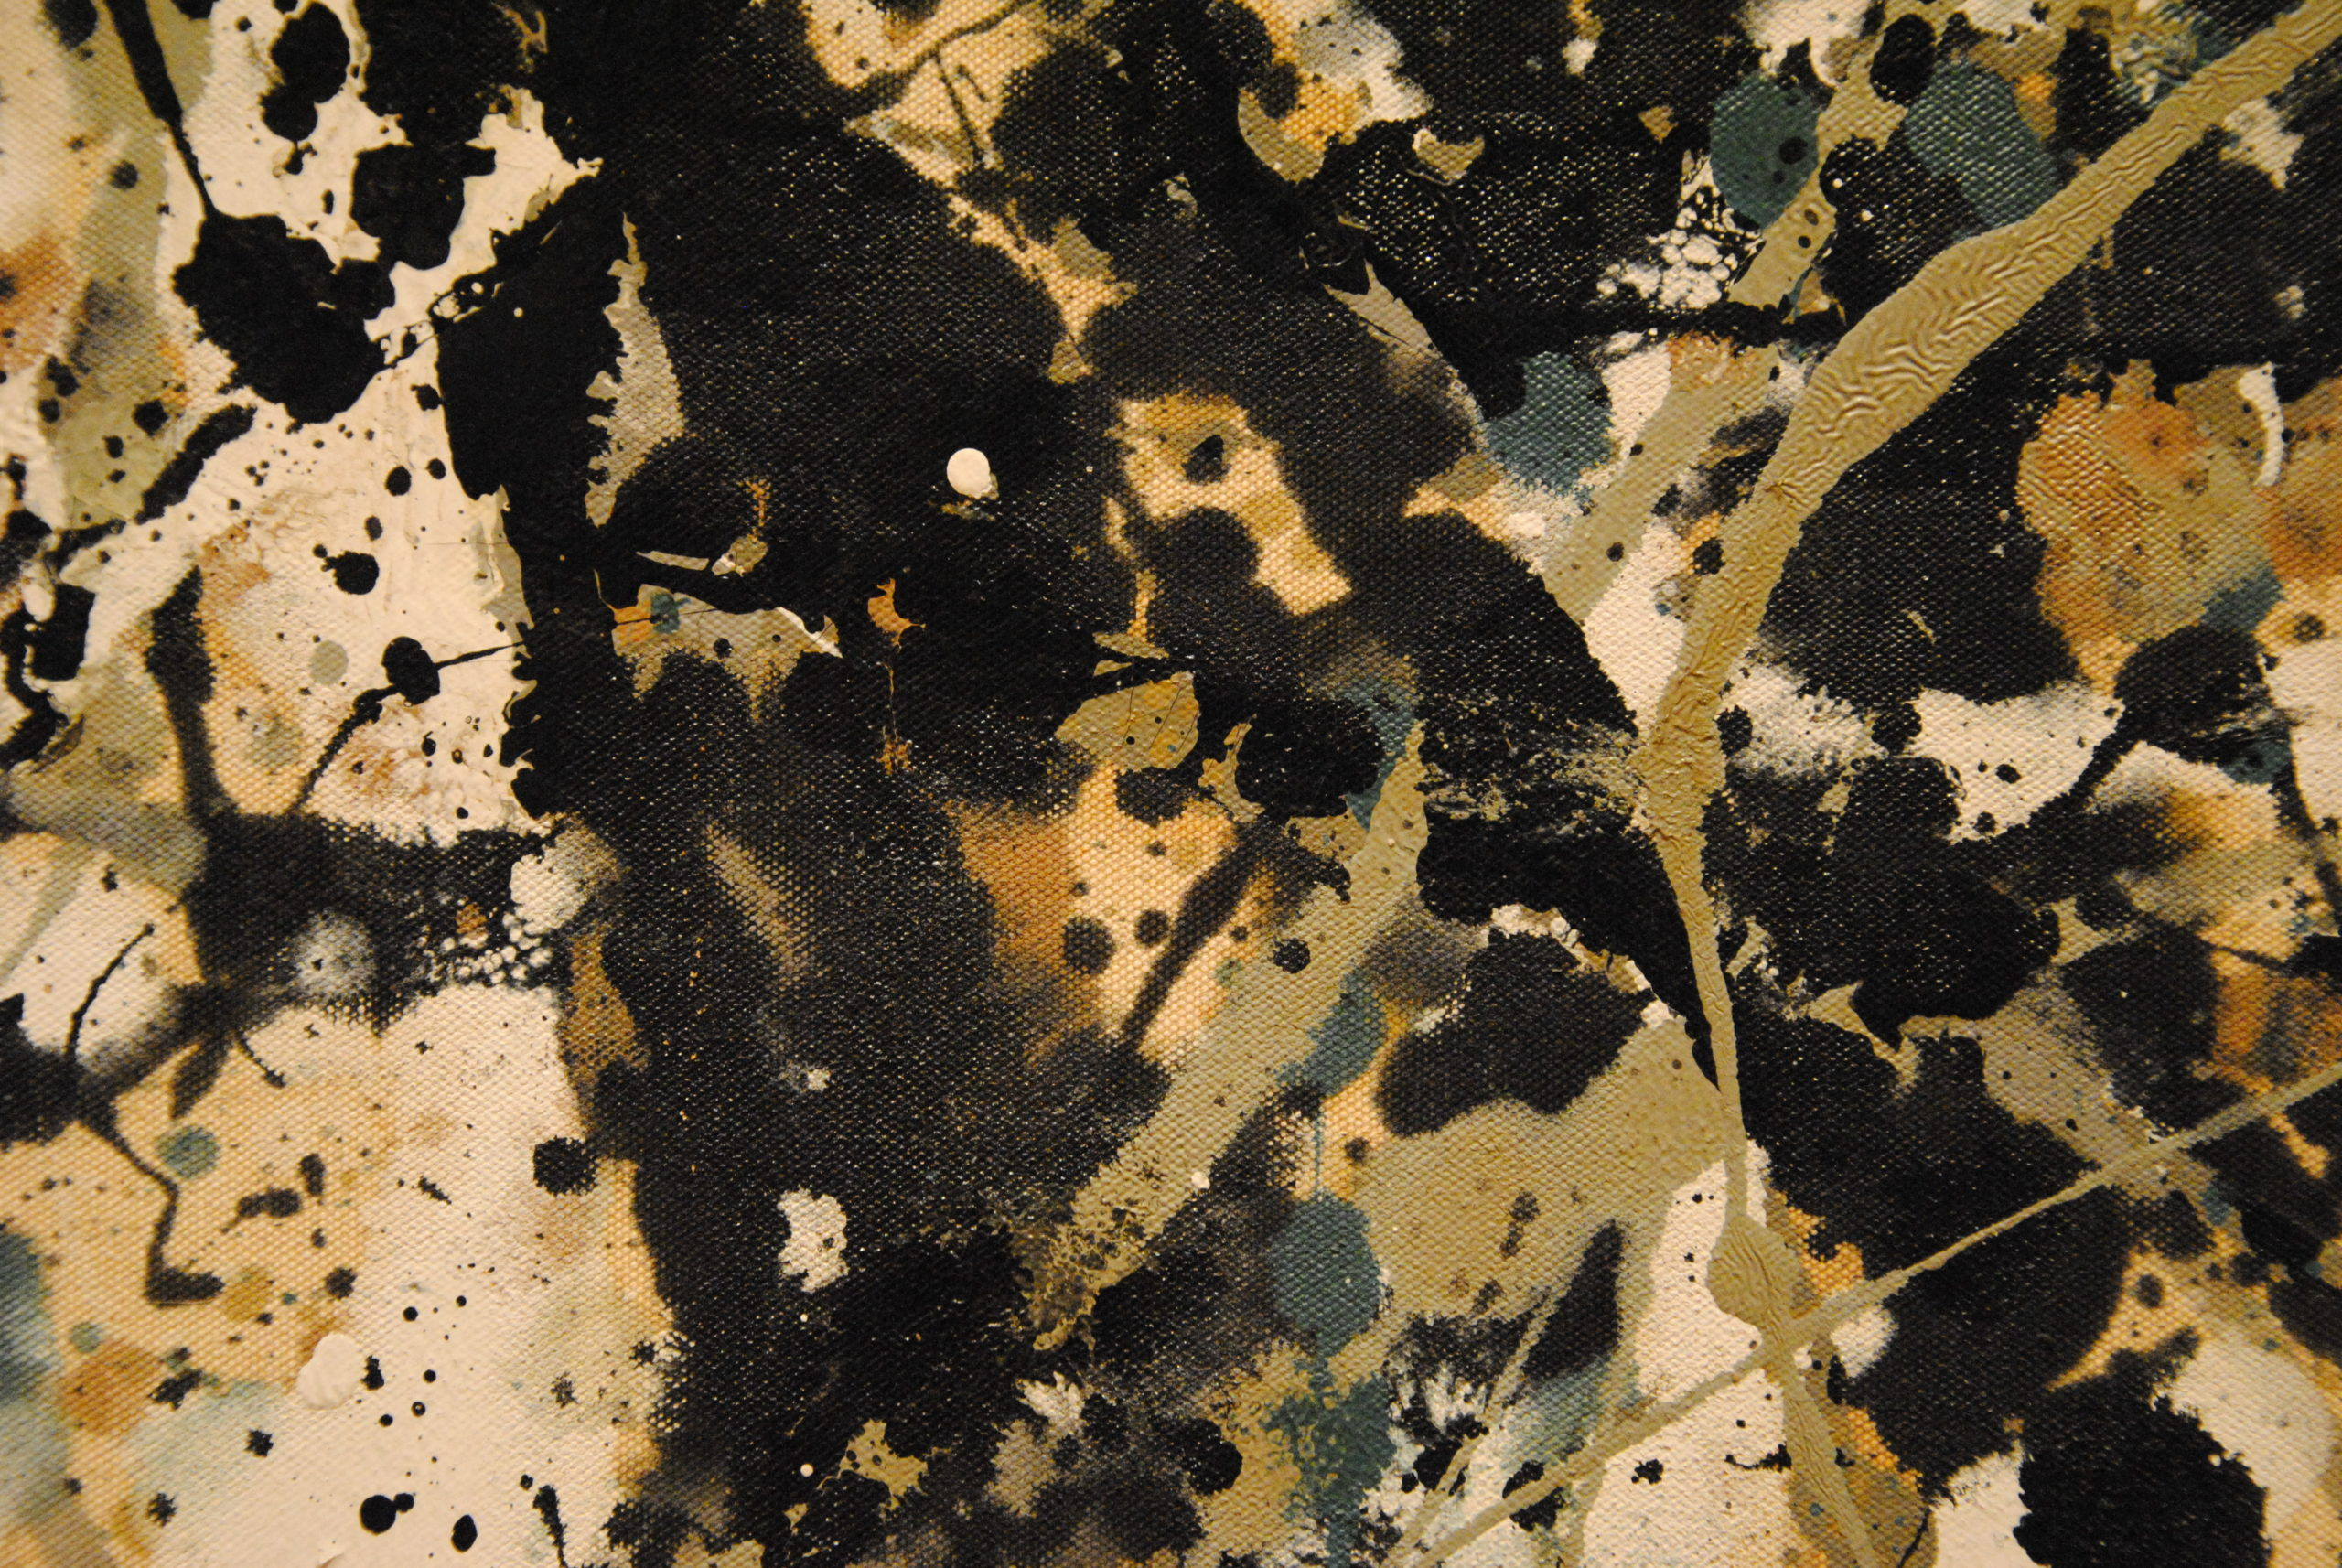 Detail of Jackson Pollock - Autumn Rhythm (Number 30), 1950, enamel on canvas, 266.7 x 525.8 cm (8 ft. 9 in. x 17 ft. 3 in.), installation view, Metropolitan Museum of Art, New York